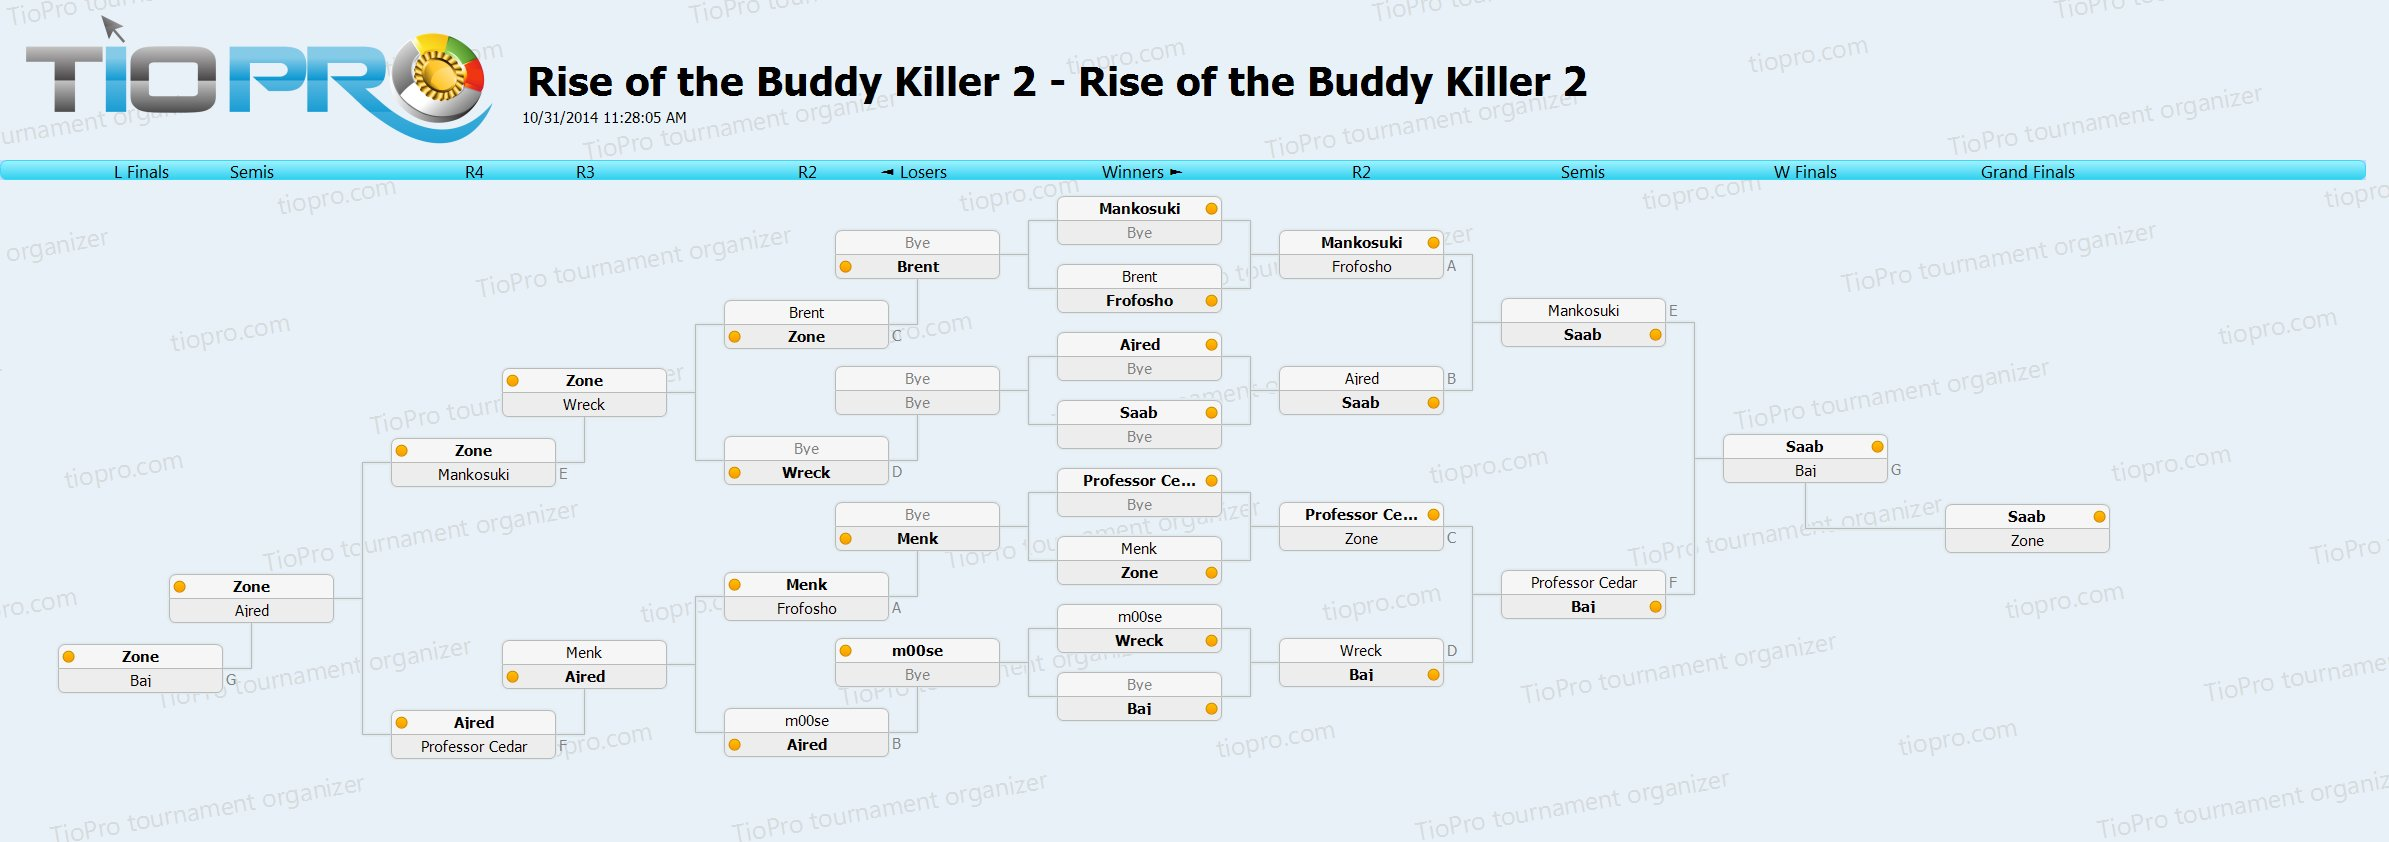 Rise of the Buddy Killer 2